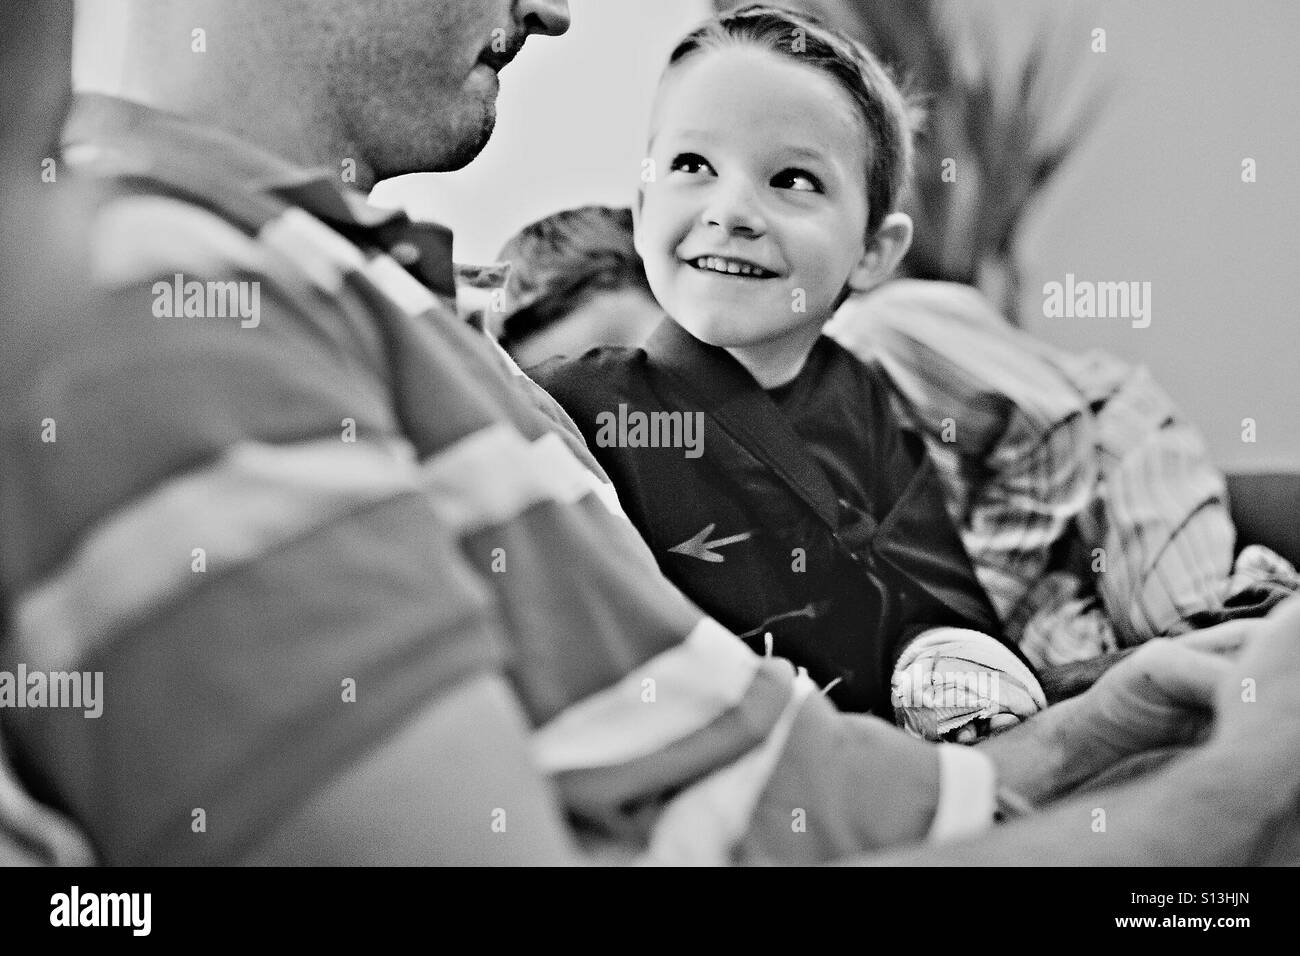 Boy with broken arm looking up and smiling at his dad - Stock Image